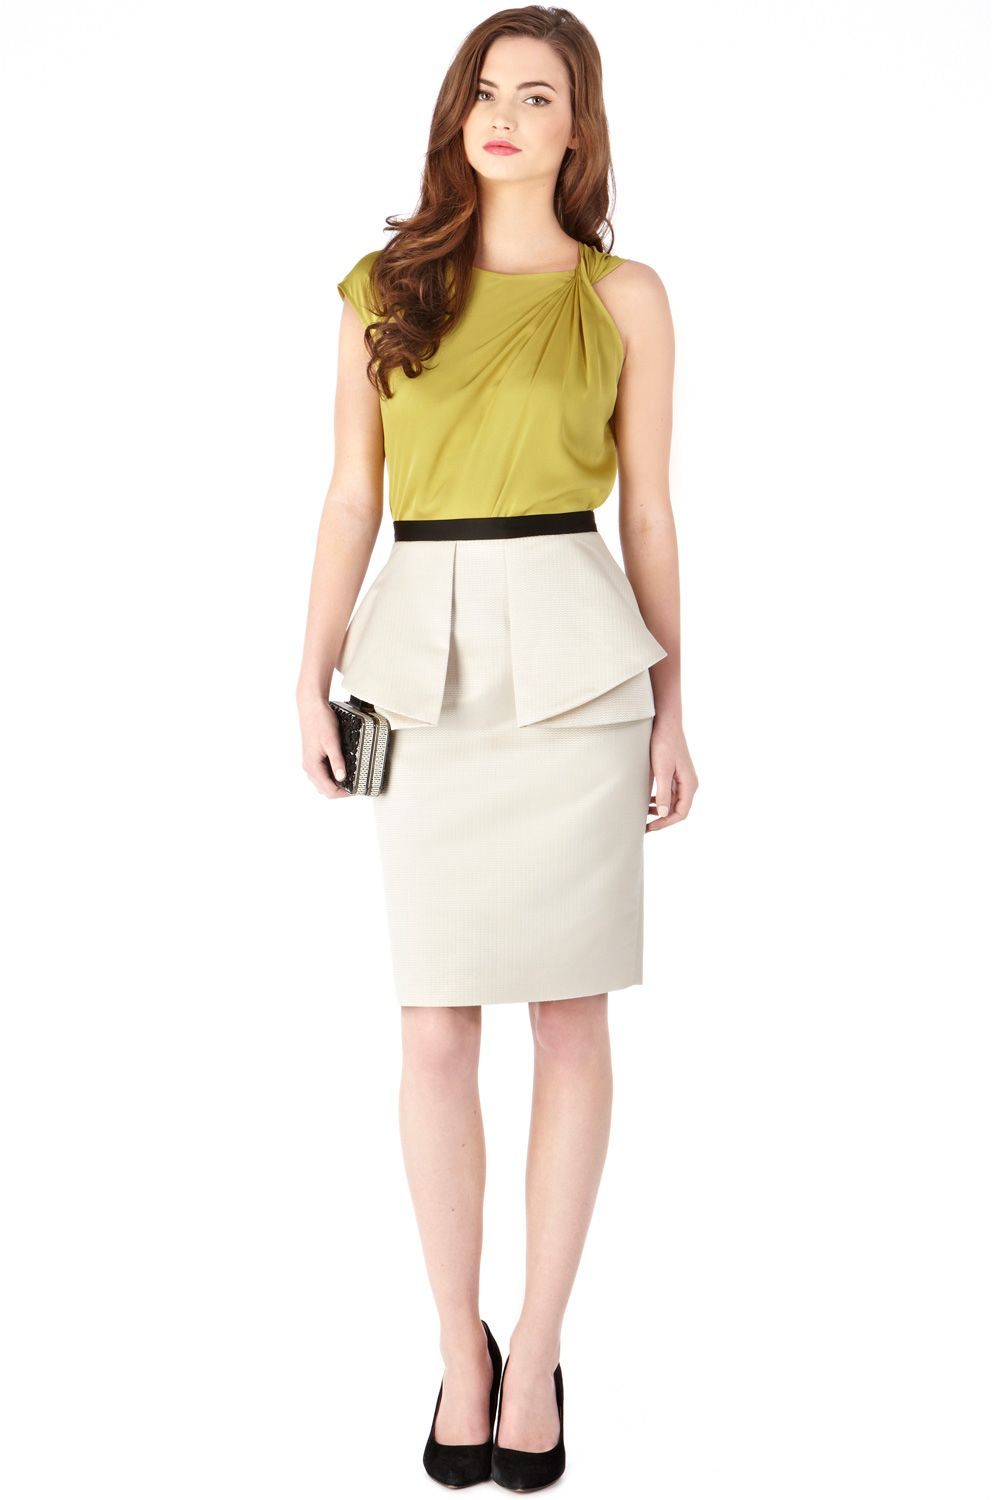 Renee peplum skirt